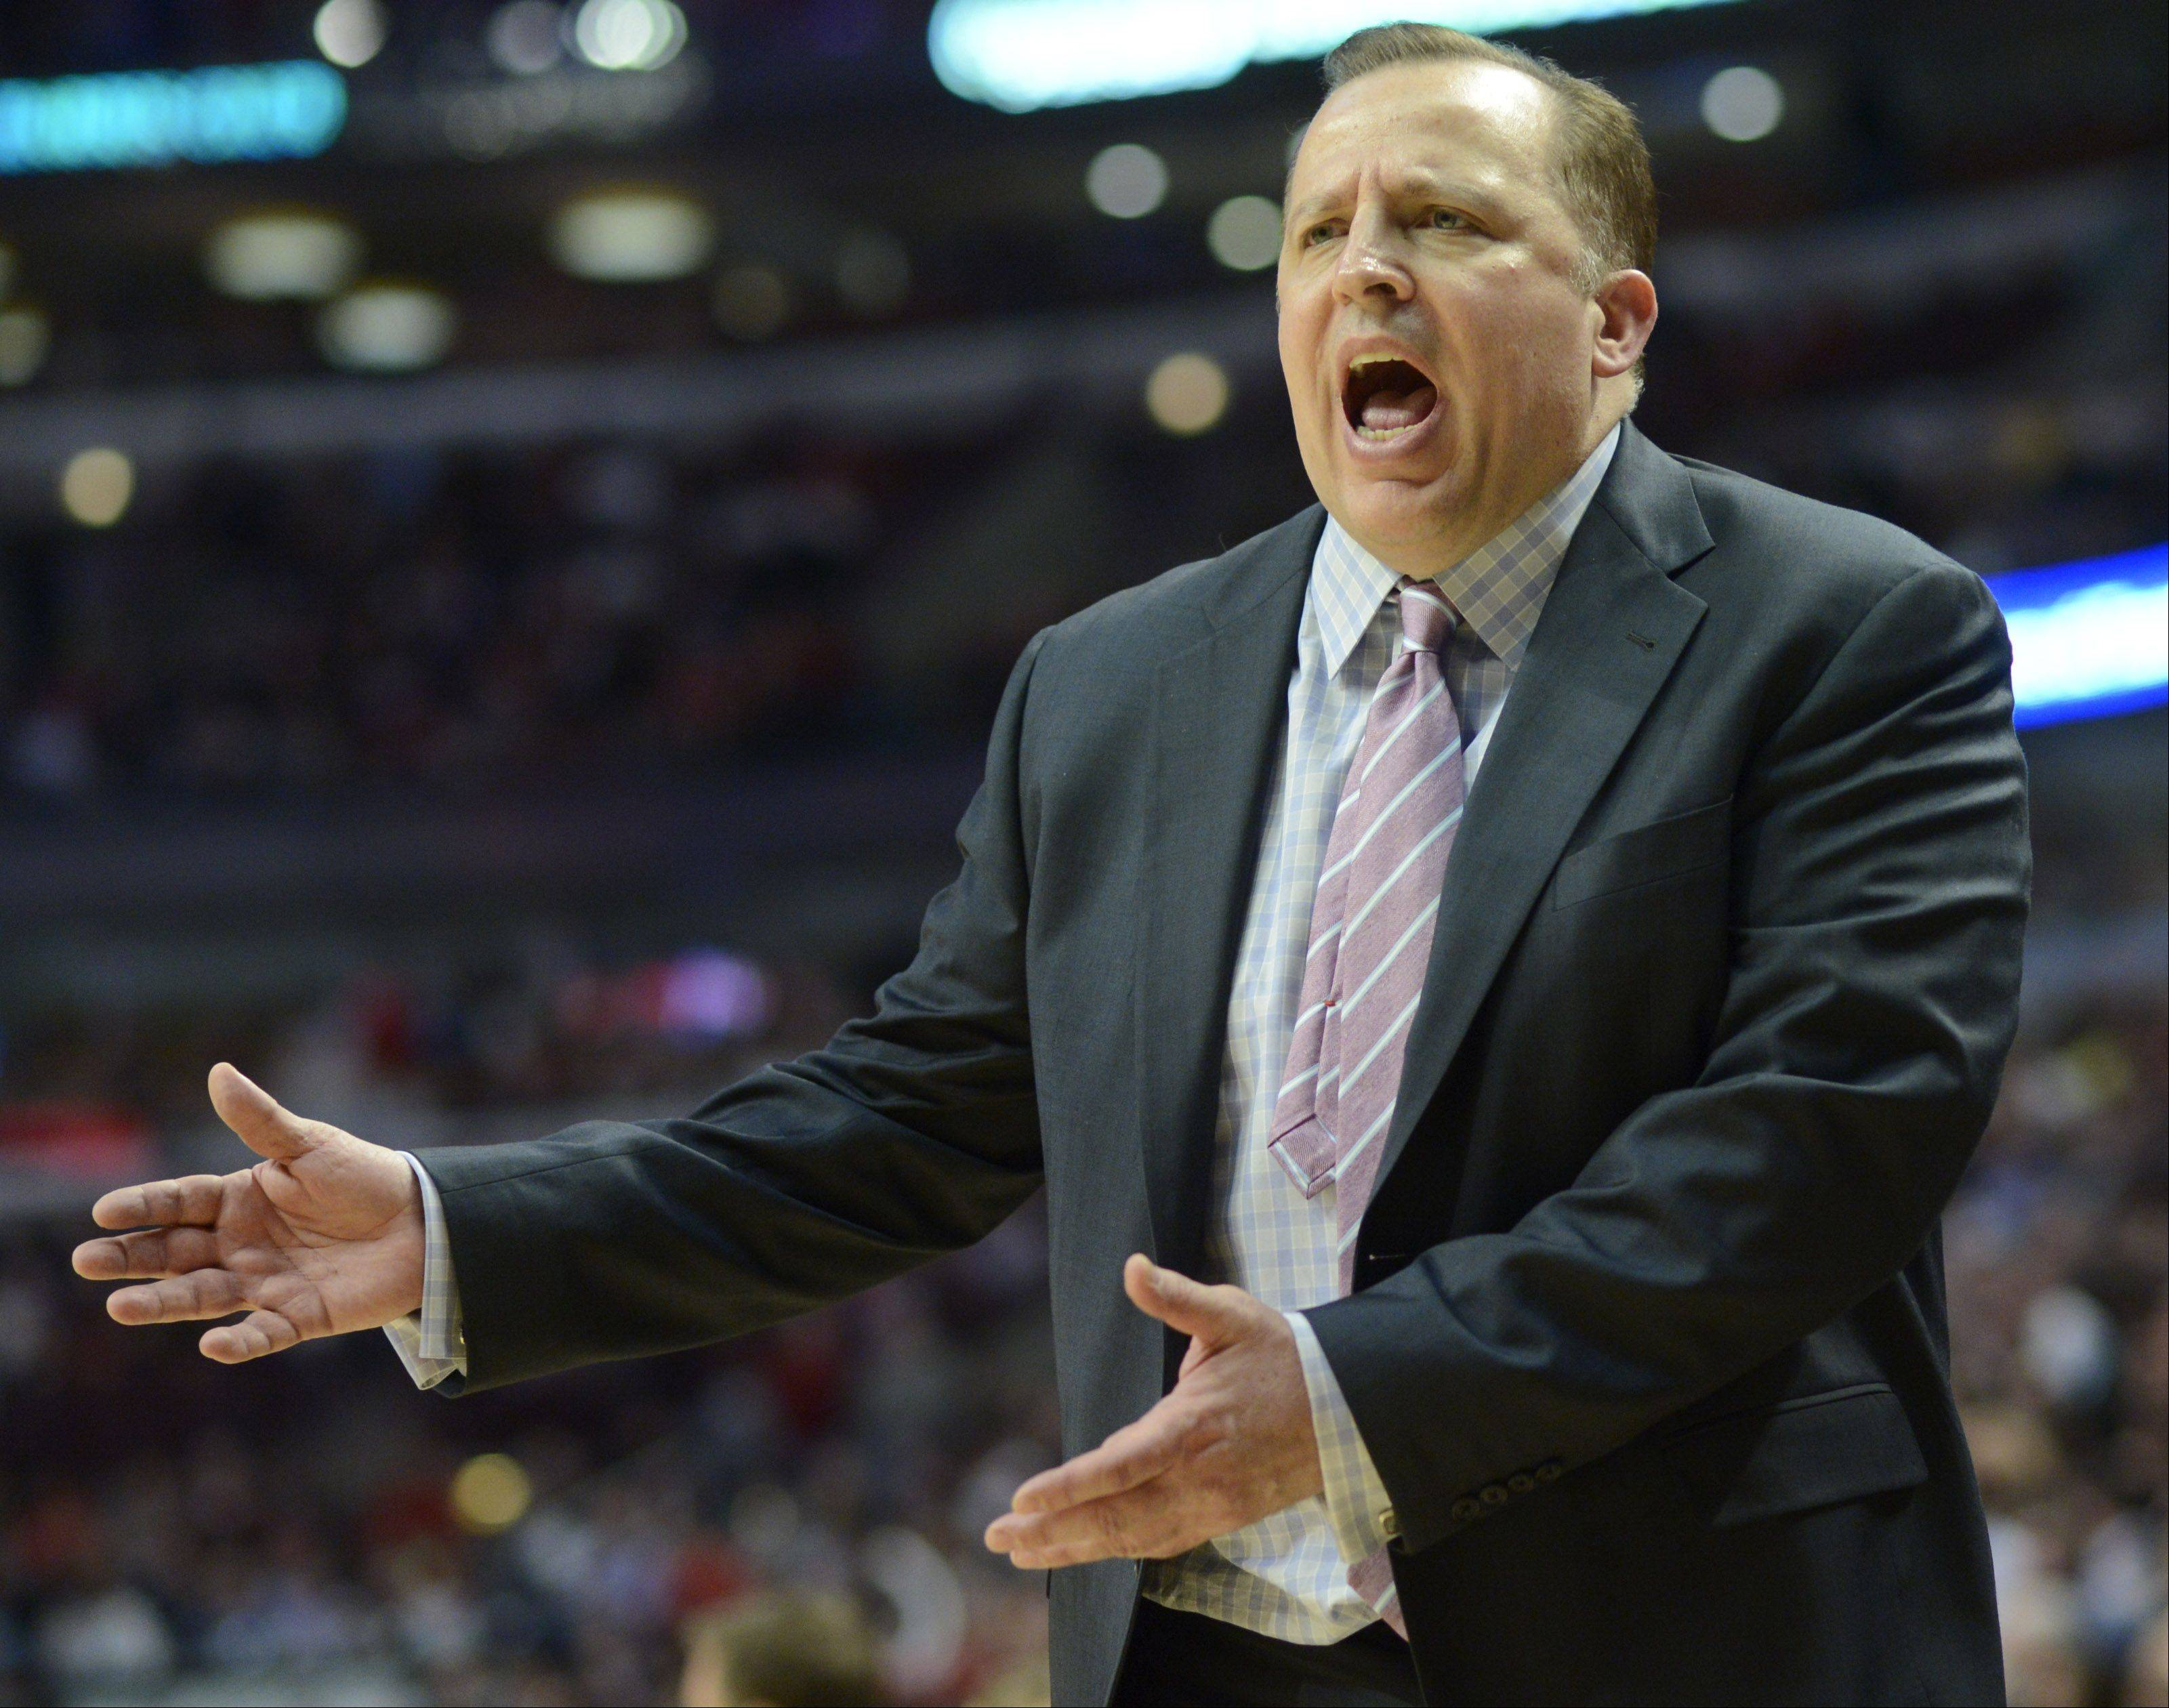 Bulls coach Tom Thibodeau reacts to an official's call during Wednesday's victory over the Miami heat.